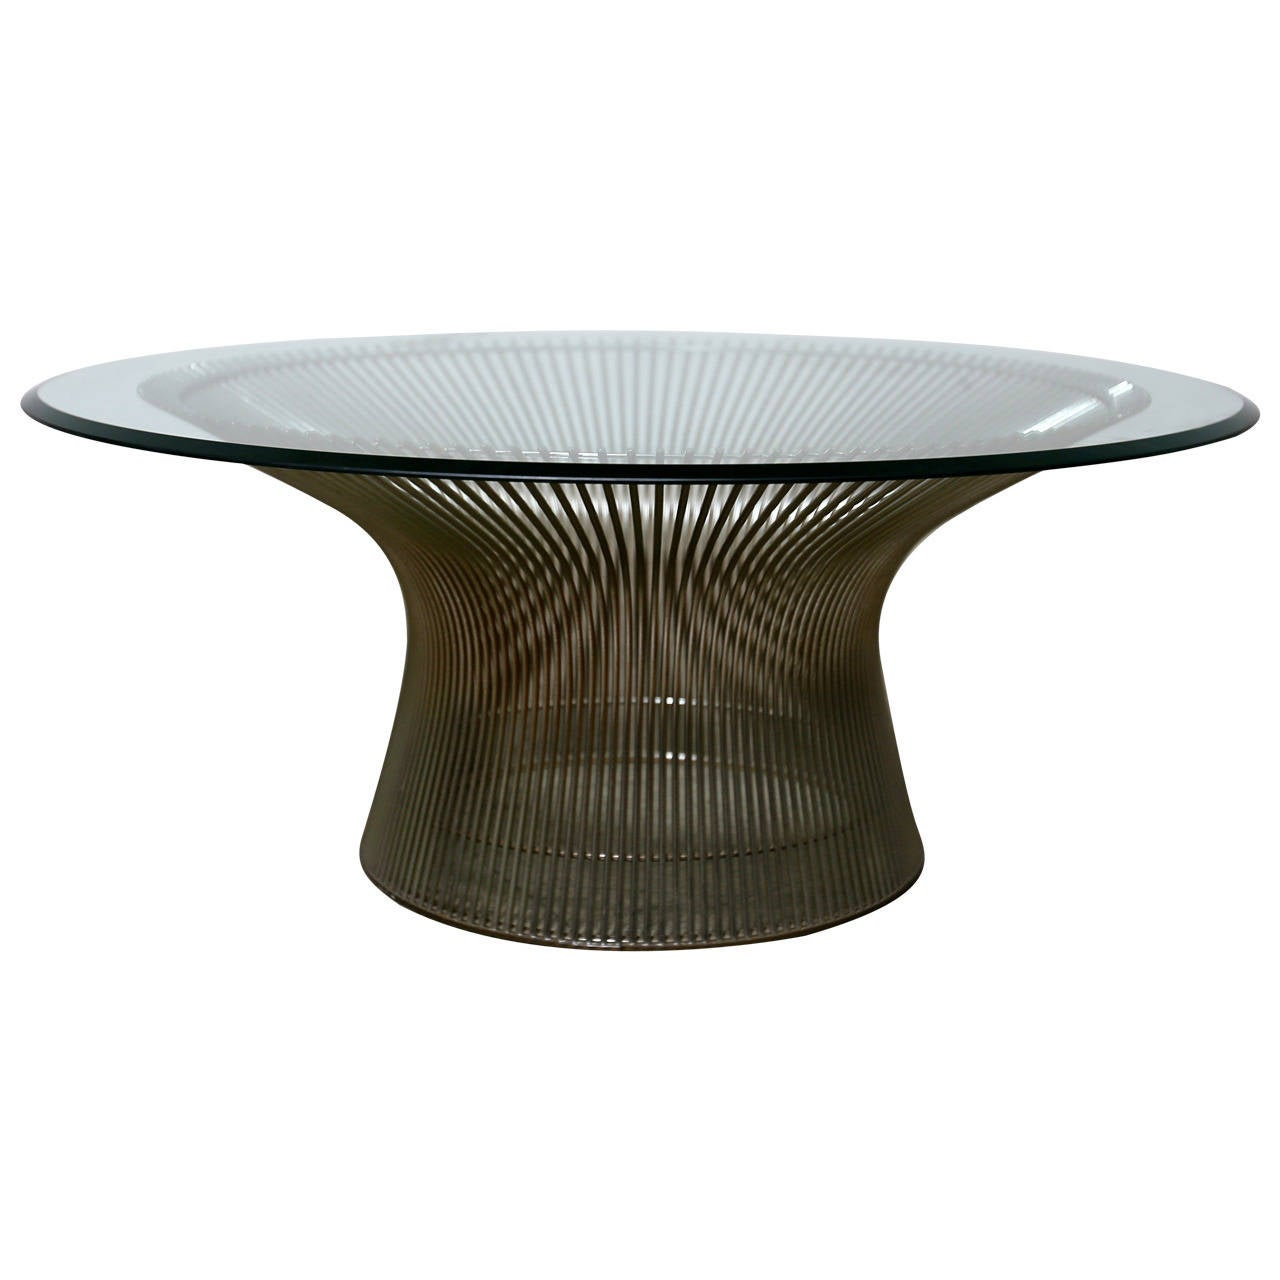 this round coffee table by warren platner for knoll is no longer